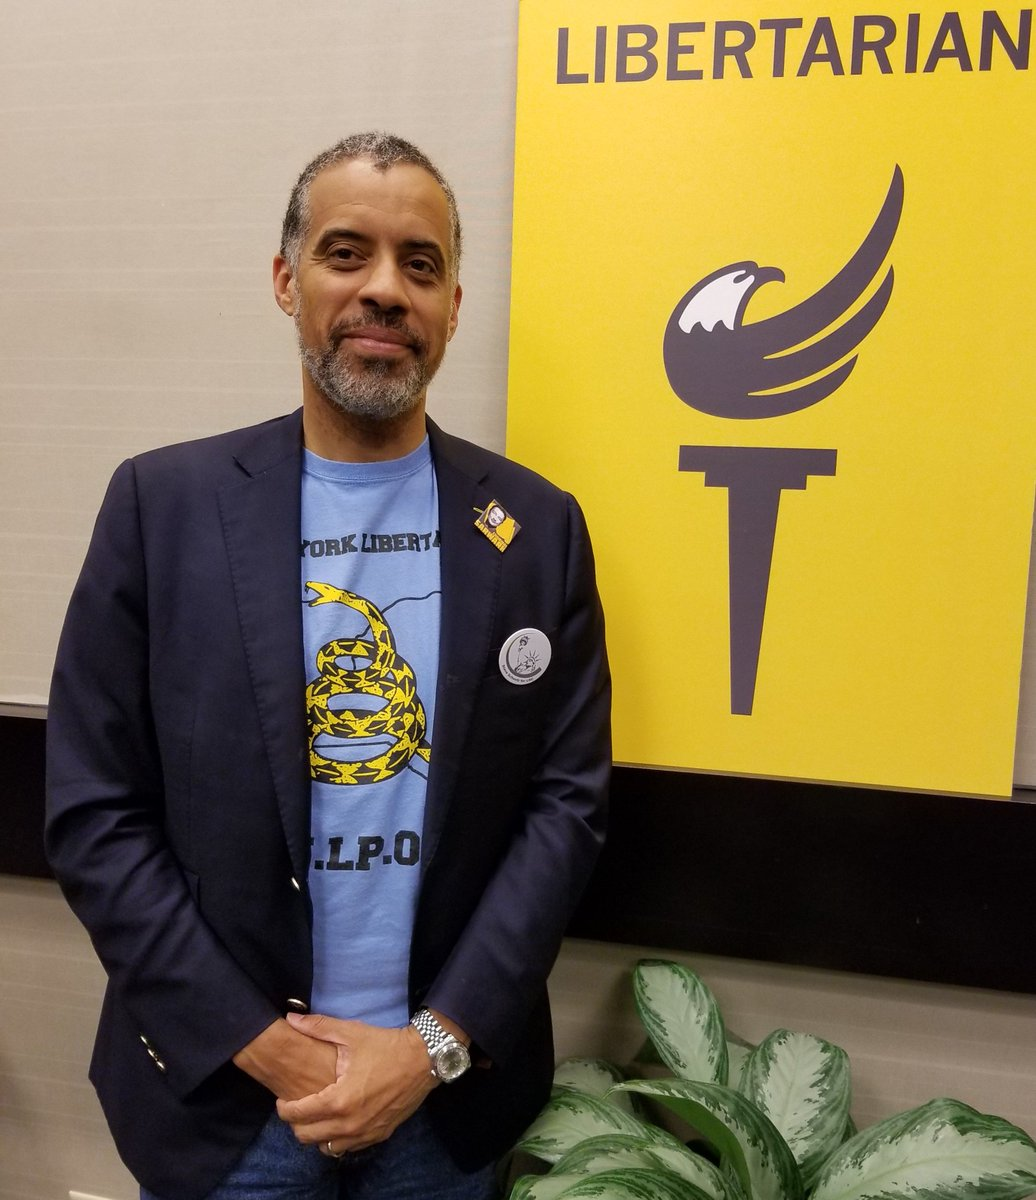 """""""We were right on marriage equality. We were right on marijuana. We're right on cryptocurrency. The question is, will we get the credit for it?"""" @LarrySharpe says.  https:// bit.ly/2BaIuVN  &nbsp;  <br>http://pic.twitter.com/TQGjcrONlY"""